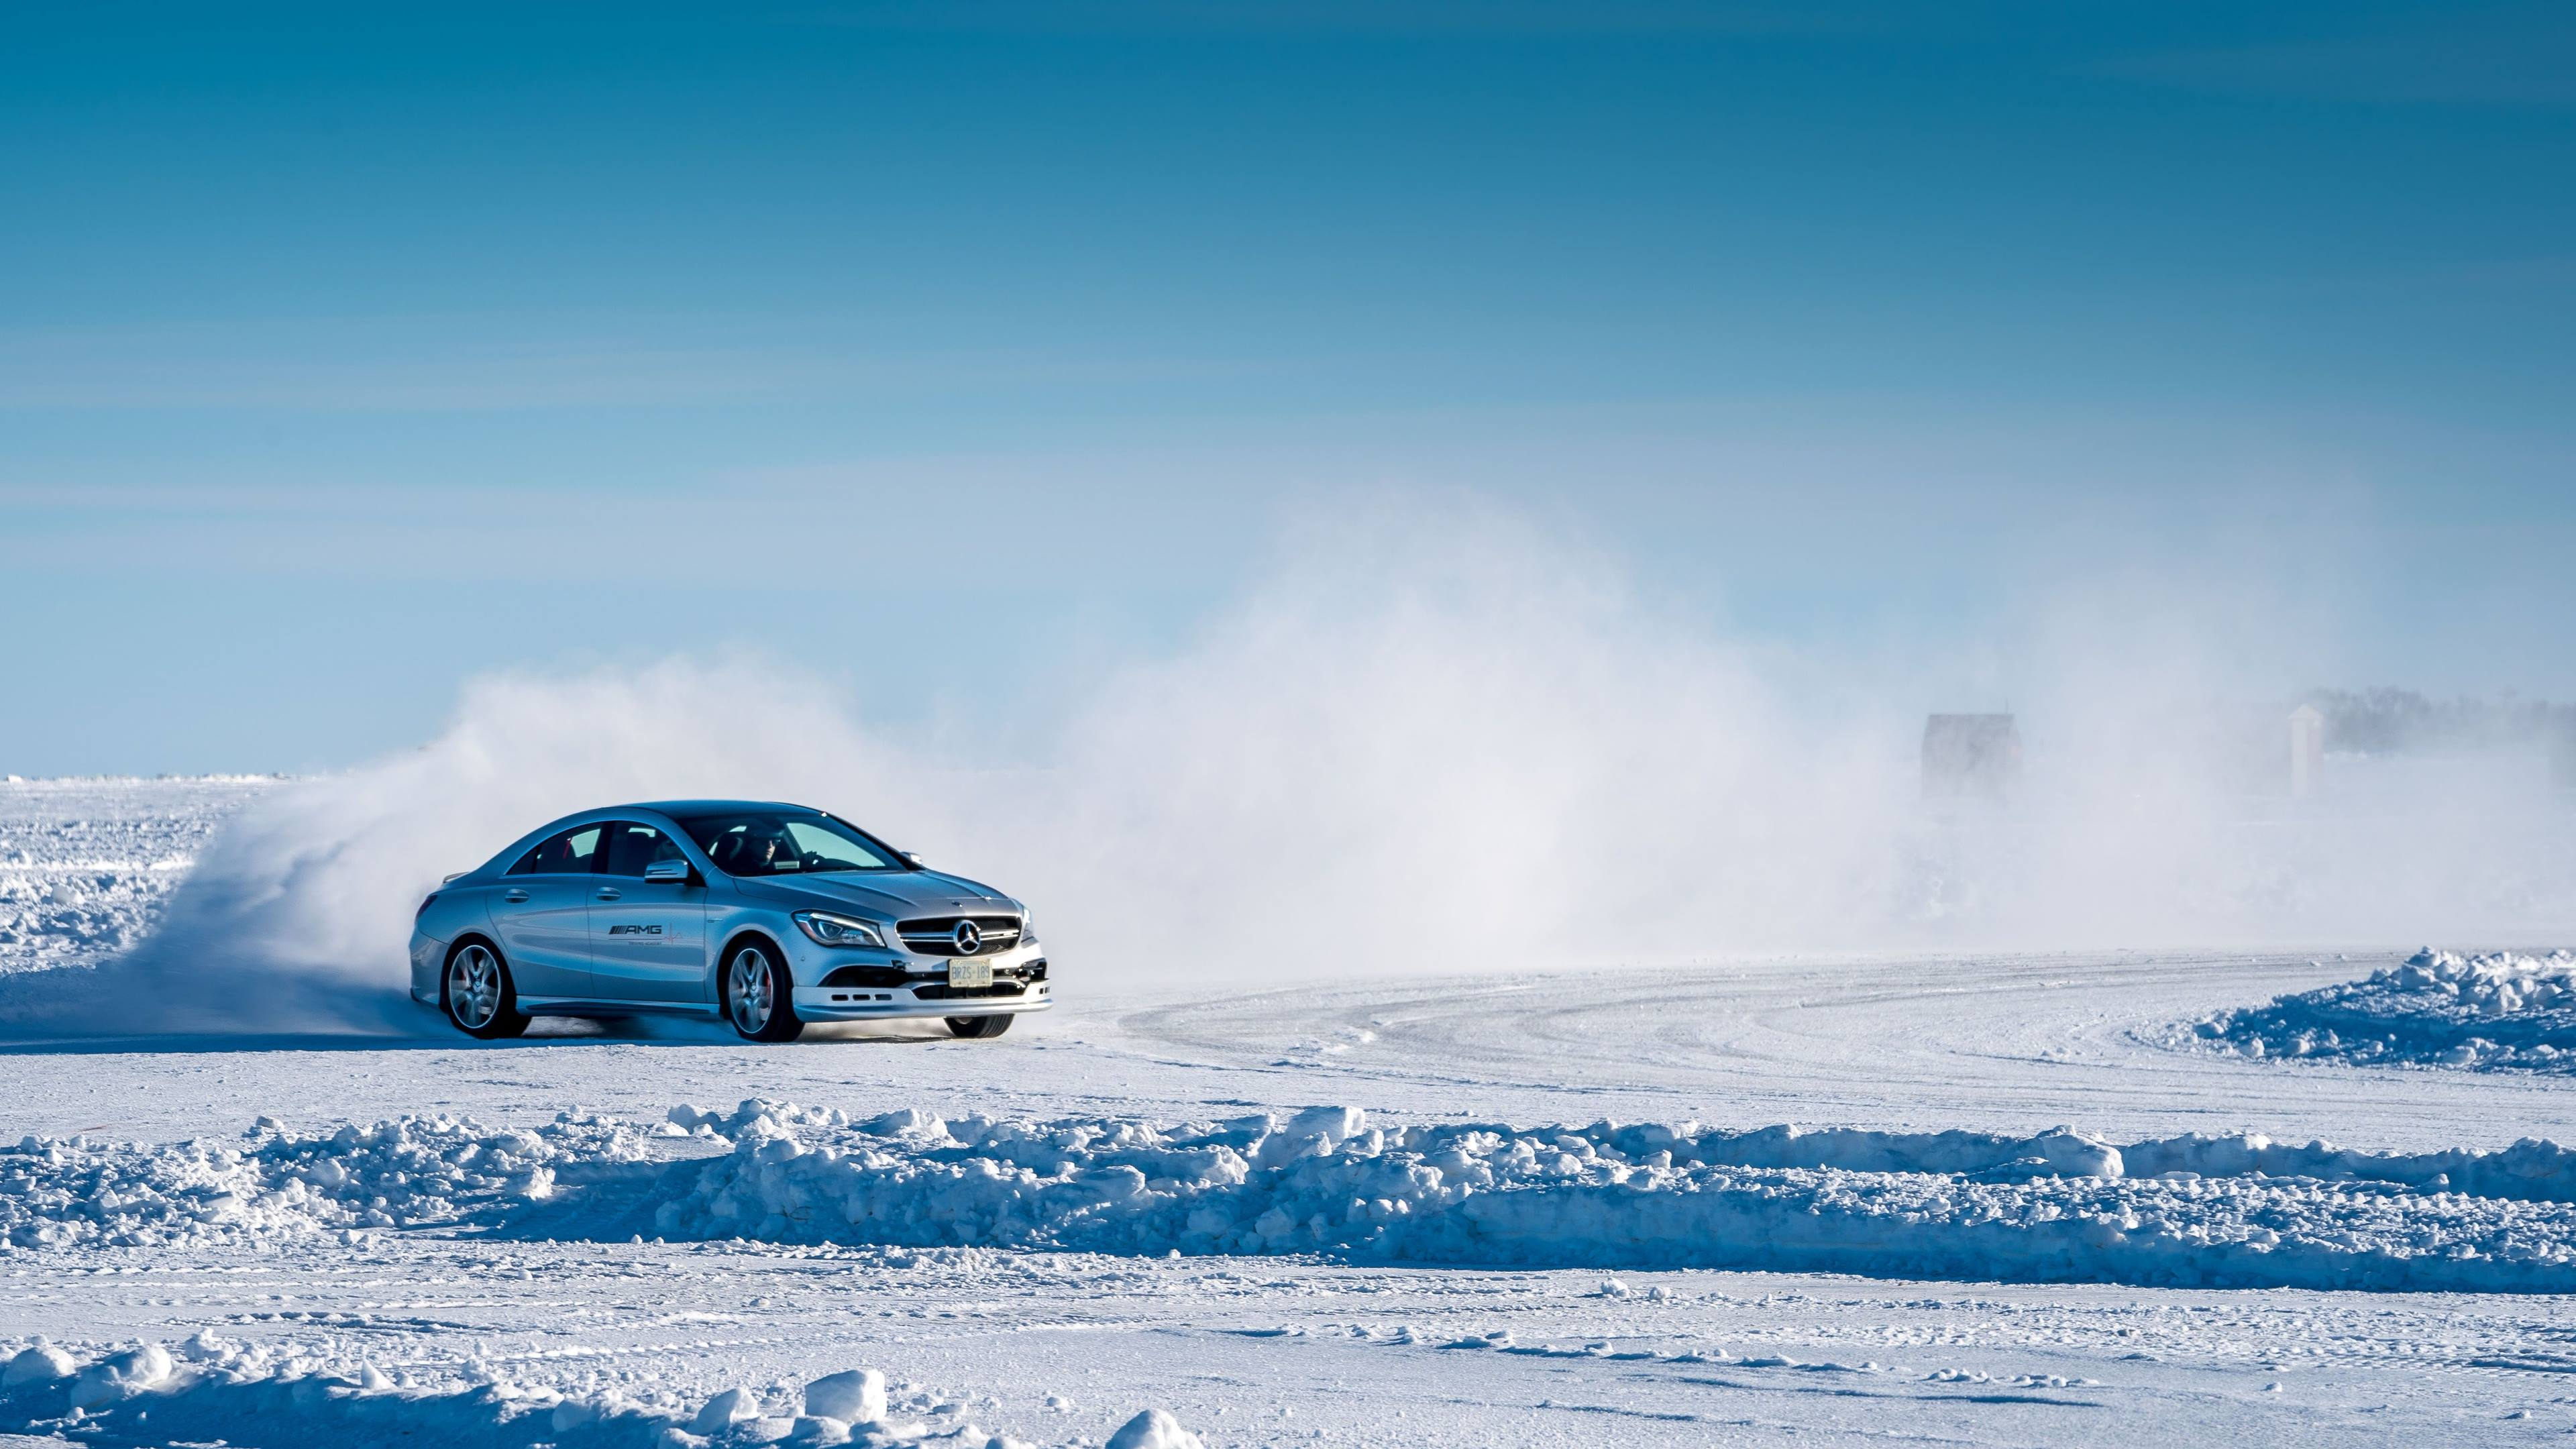 Mercedes-AMG drifting on ice